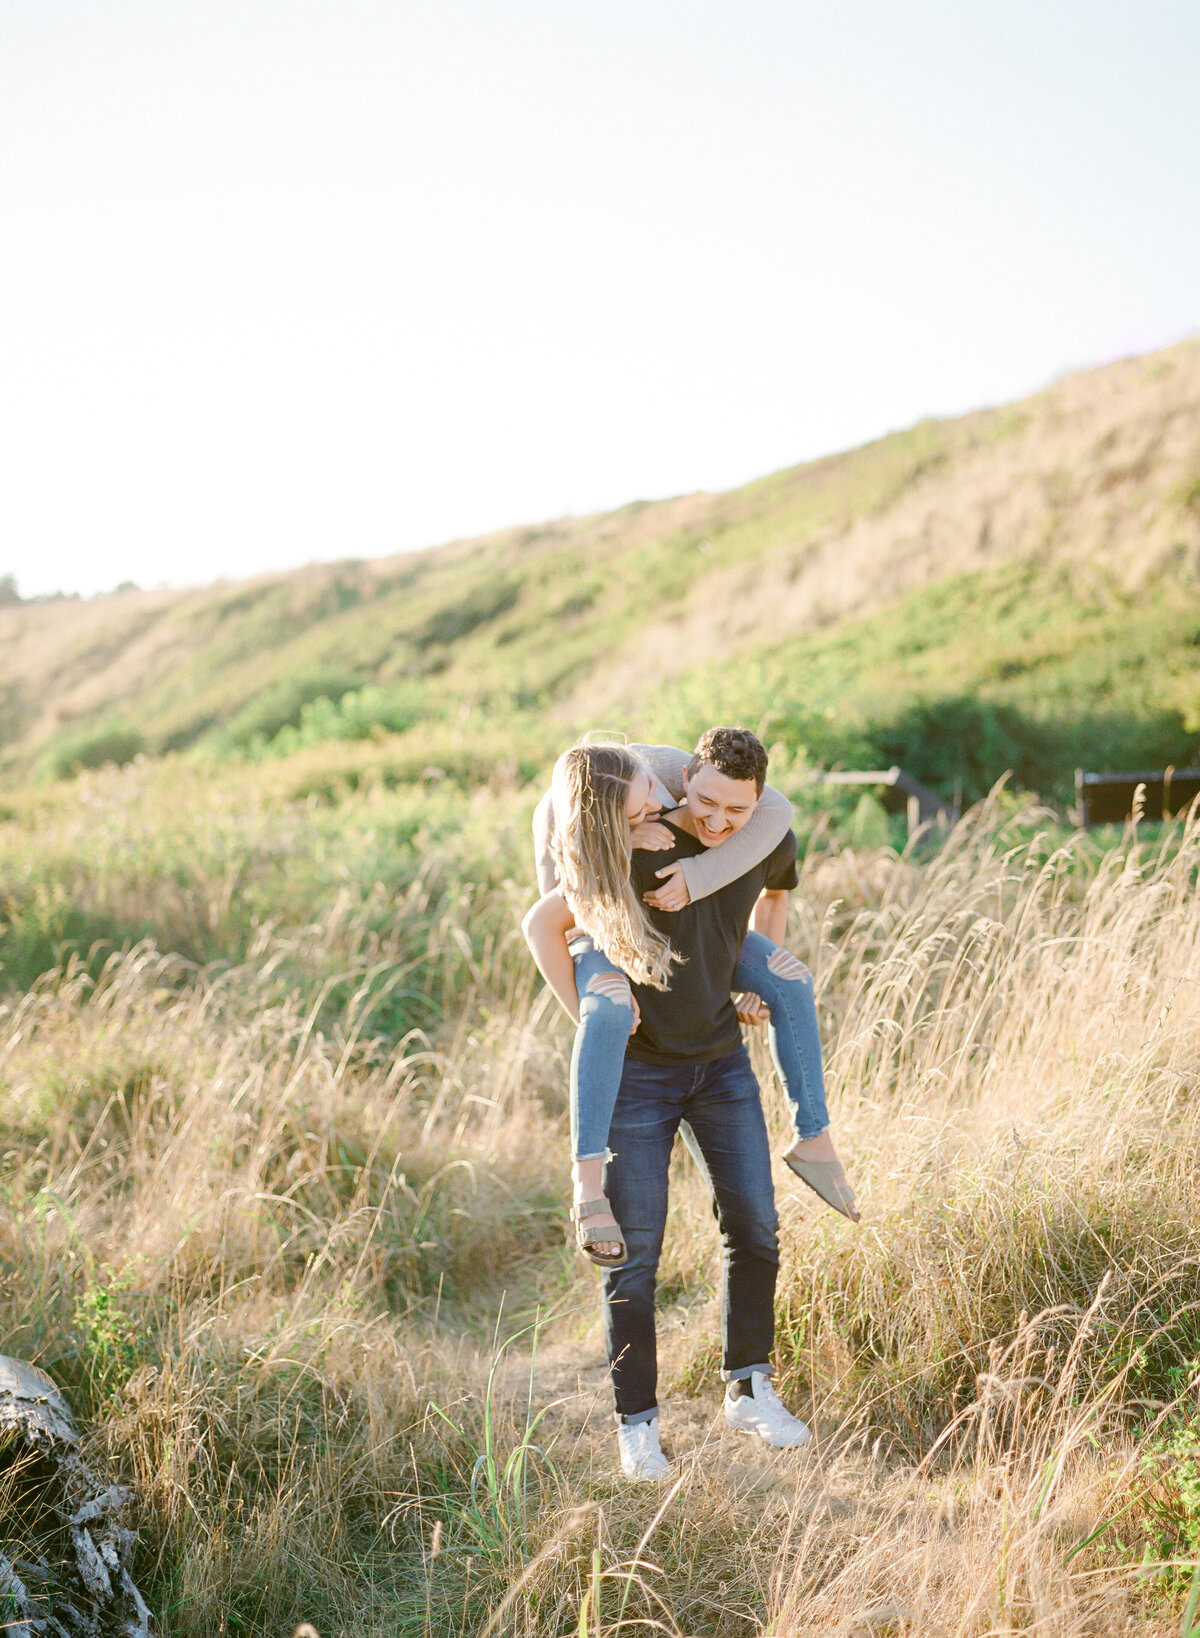 Ellise & Robert - Engagement Session - Tetiana Photography-70